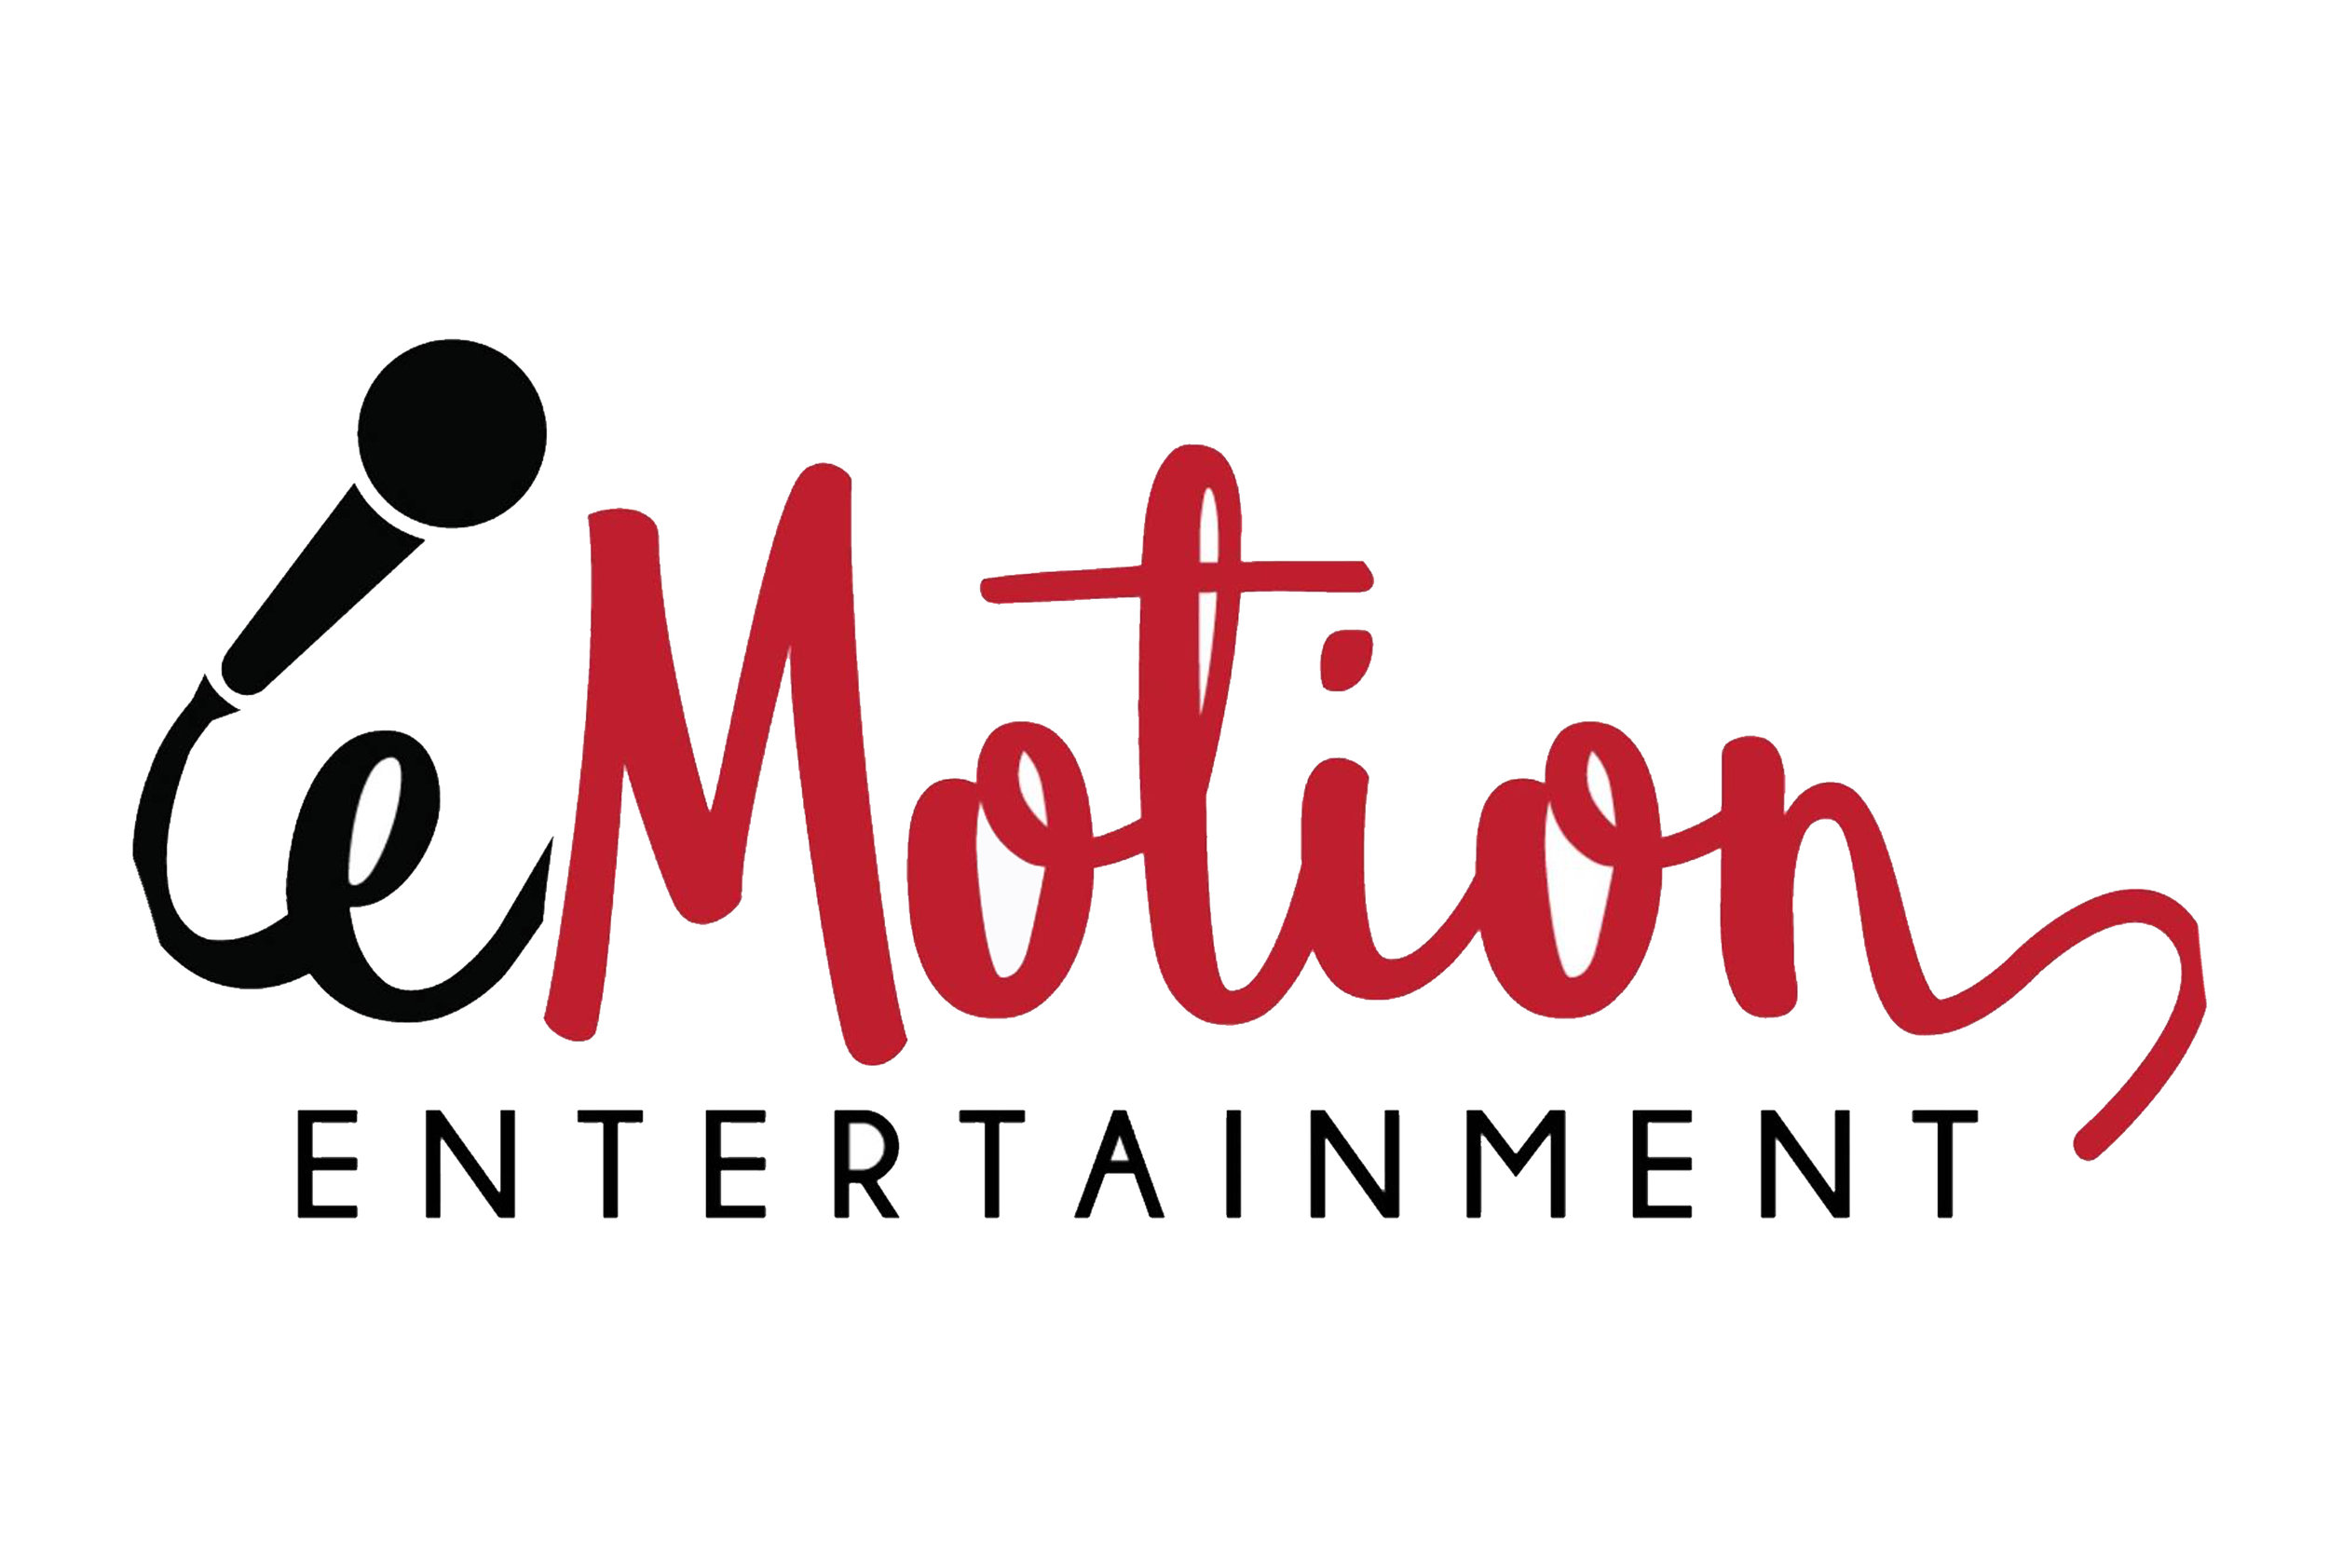 emotionlogo.jpg